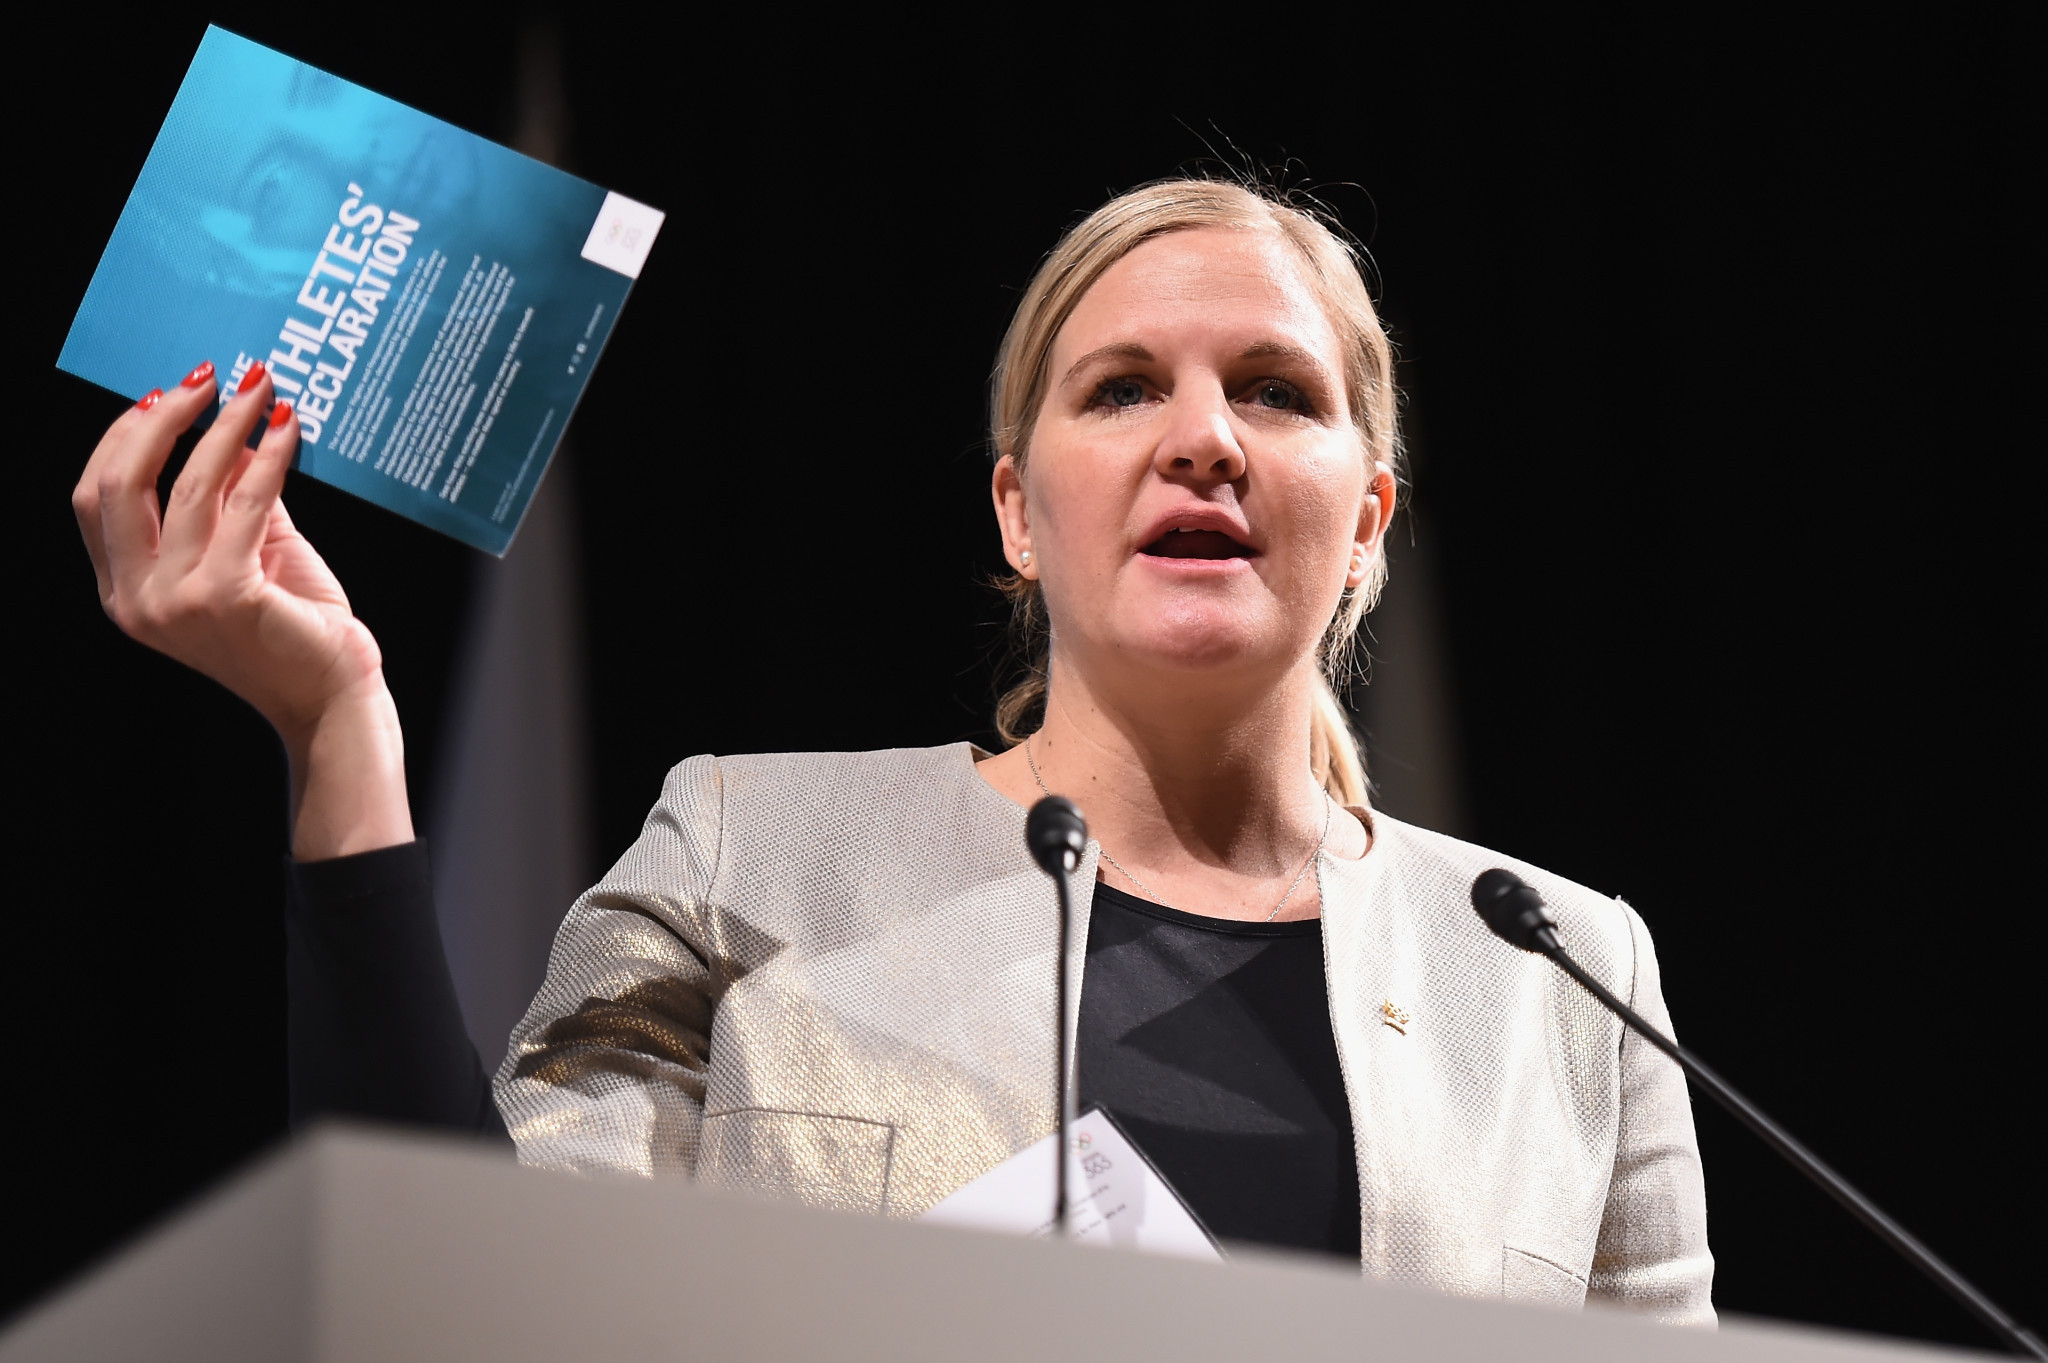 As chair of the IOC Athletes' Commission, Kirsty Coventry has had to fend off plenty of criticism ©Getty Images